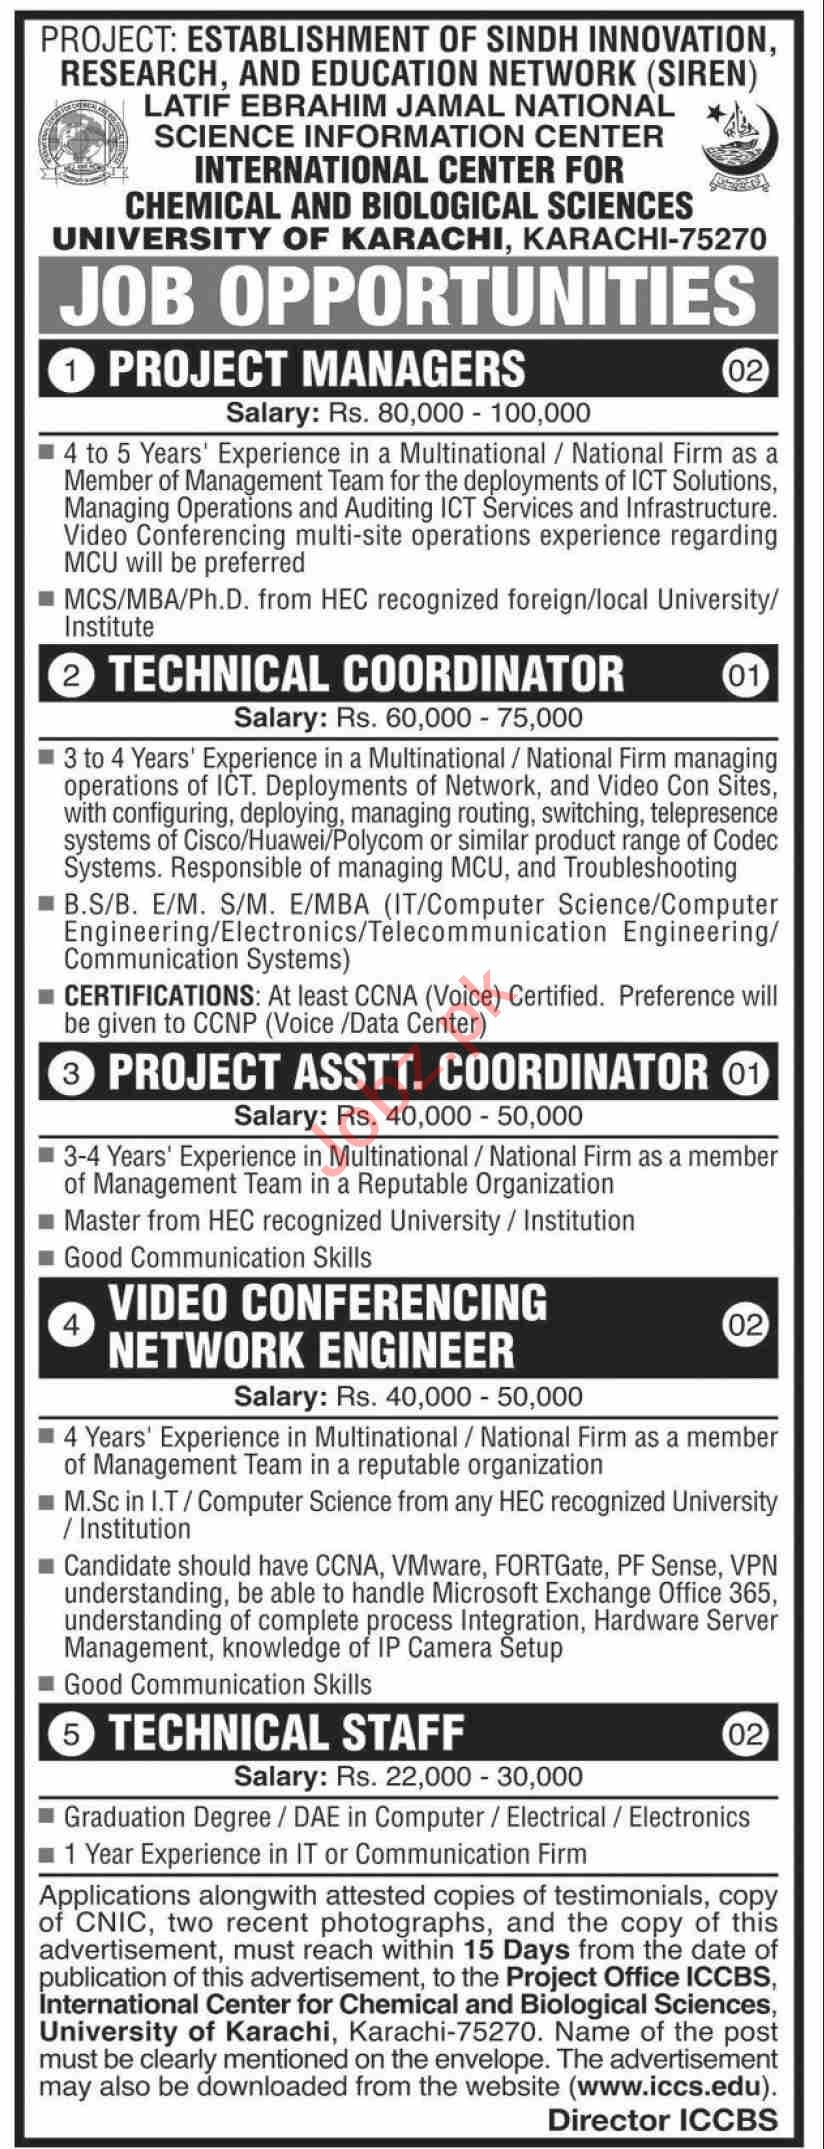 Sindh Innovation Research & Education Network SIREN Jobs